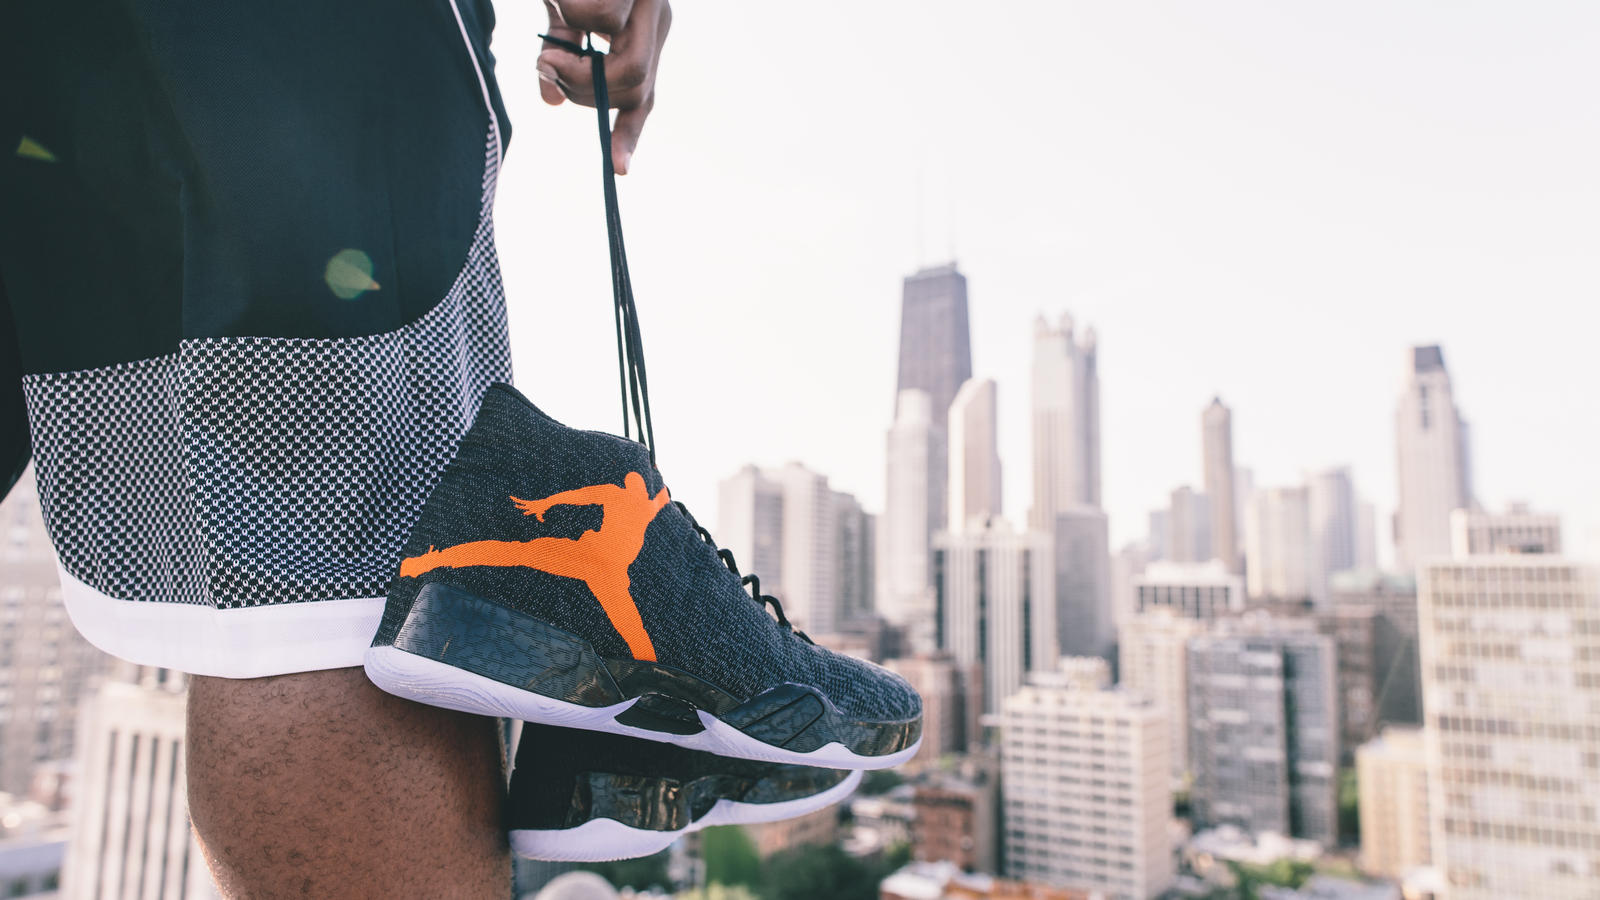 AJ XX9 Chicago Activation